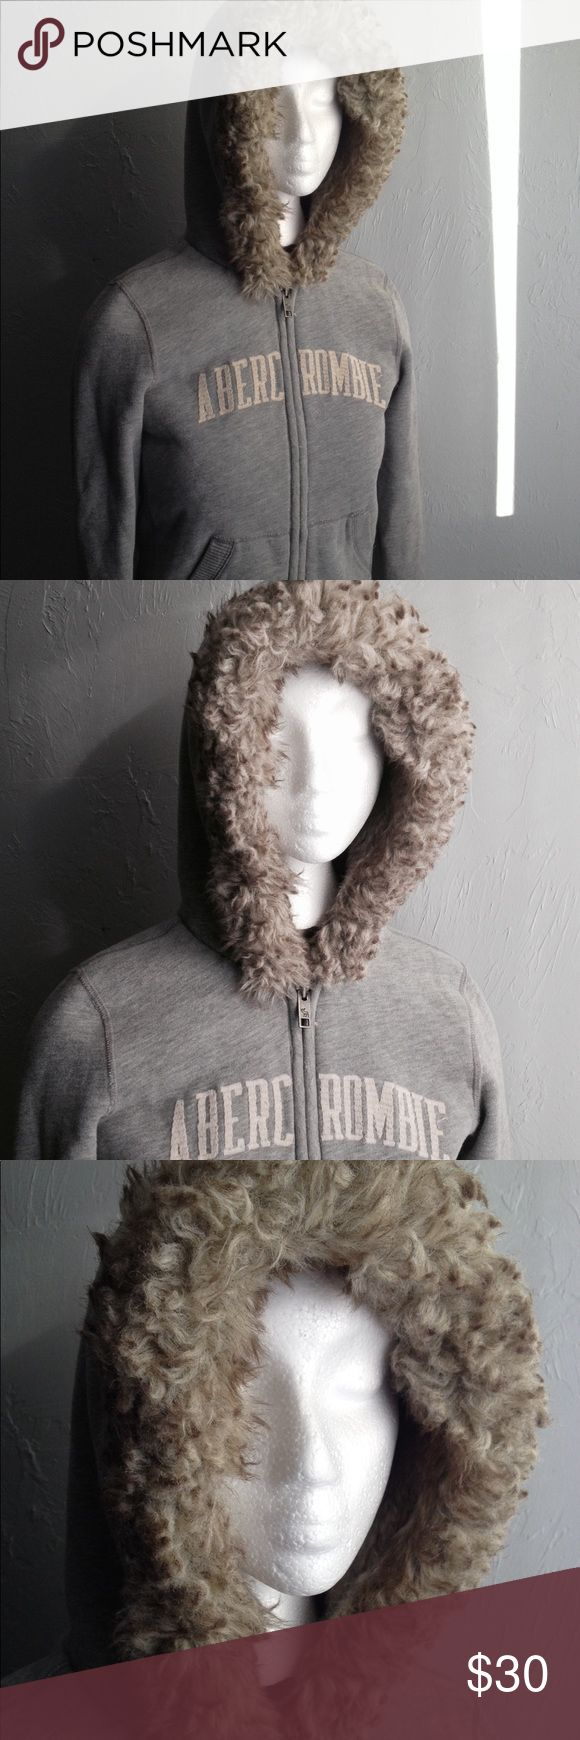 ABERCROMBIE Faux Fur Zip Up Hooded Sweatshirt Adorable and in wonderful shape! Slate gray hoodie with unreal soft faux fur interior and faux fur lining on the hood. ABERCROMBIE written across the front in beige. Women's size L. Abercrombie & Fitch Tops Sweatshirts & Hoodies